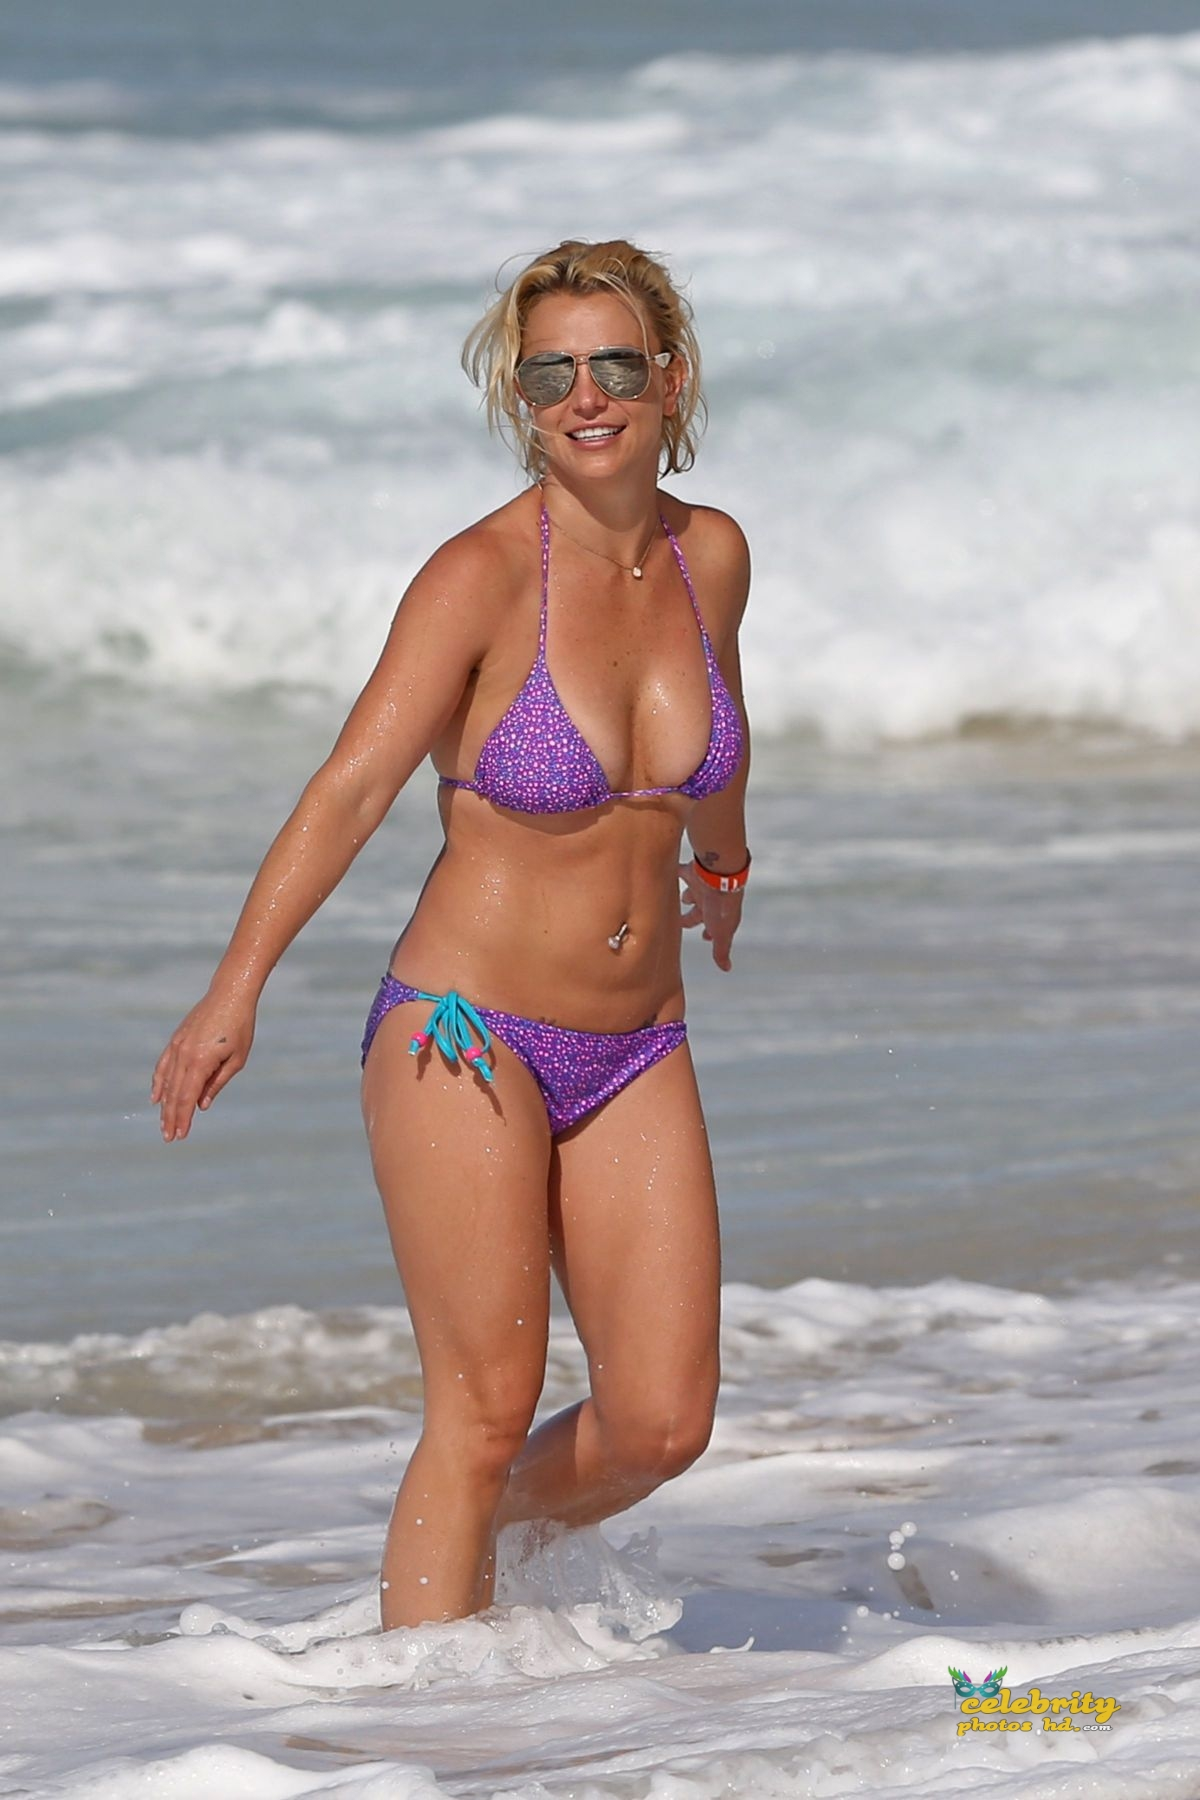 britney-spears-in-bikini-at-a-beach-in-hawaii-07-23-2015_3